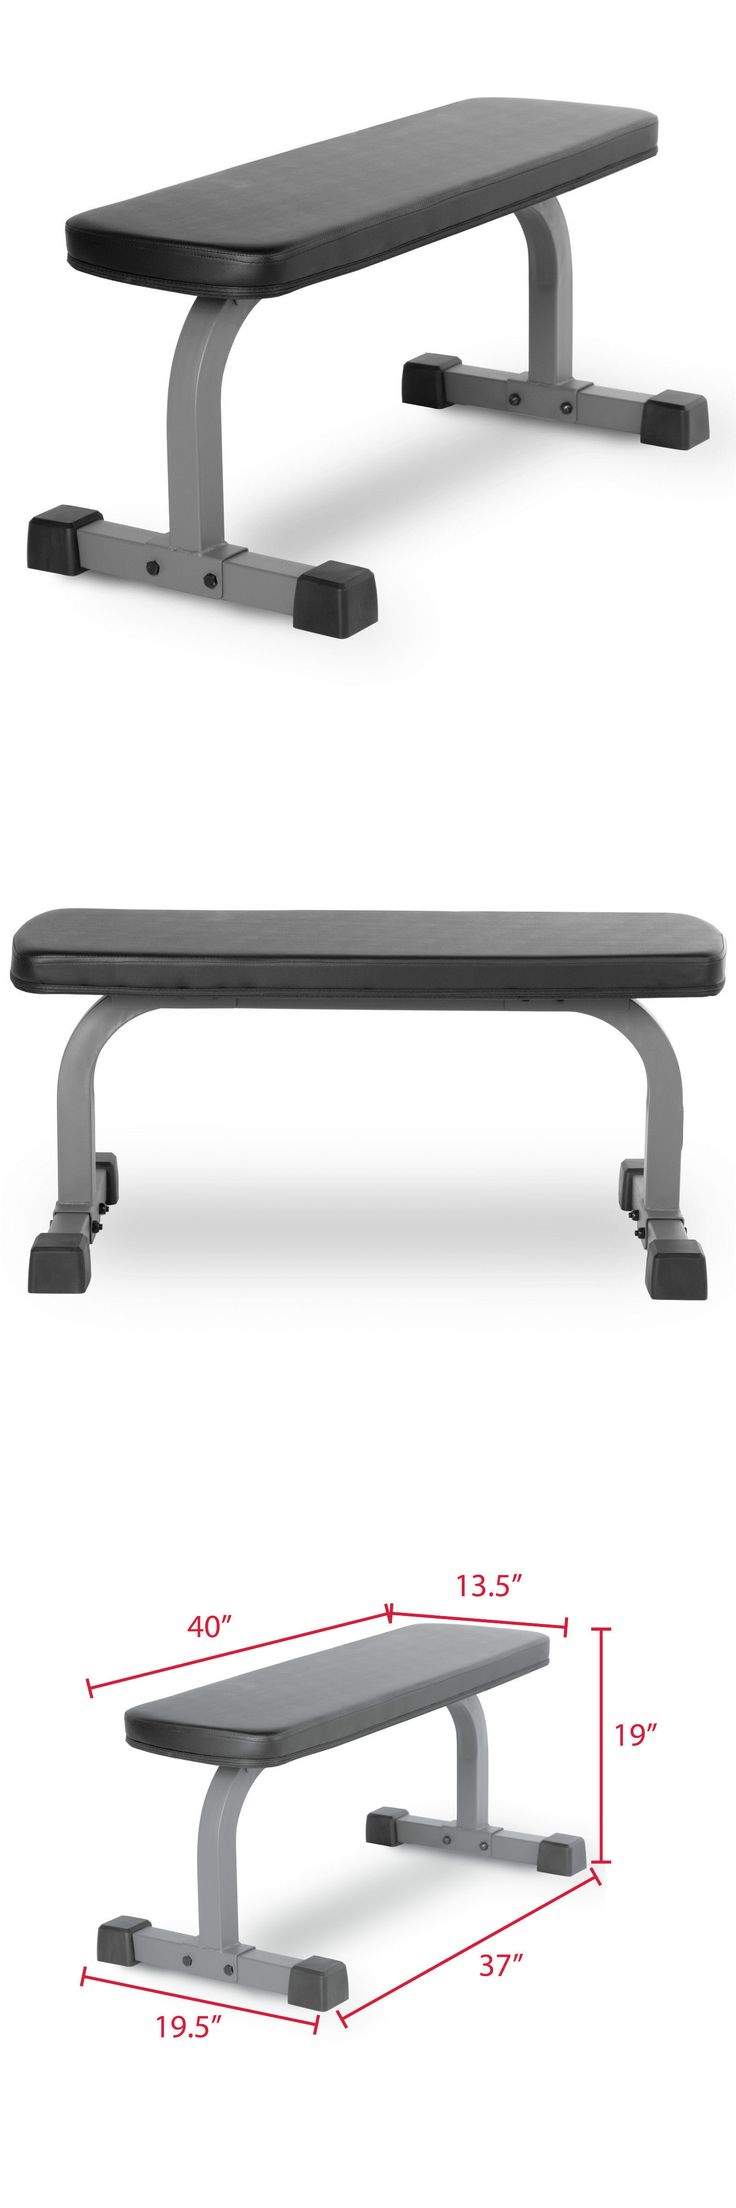 Benches 15281: Xmark Fitness Xm-4413.1 Flat Weight Bench BUY IT NOW ONLY: $75.0